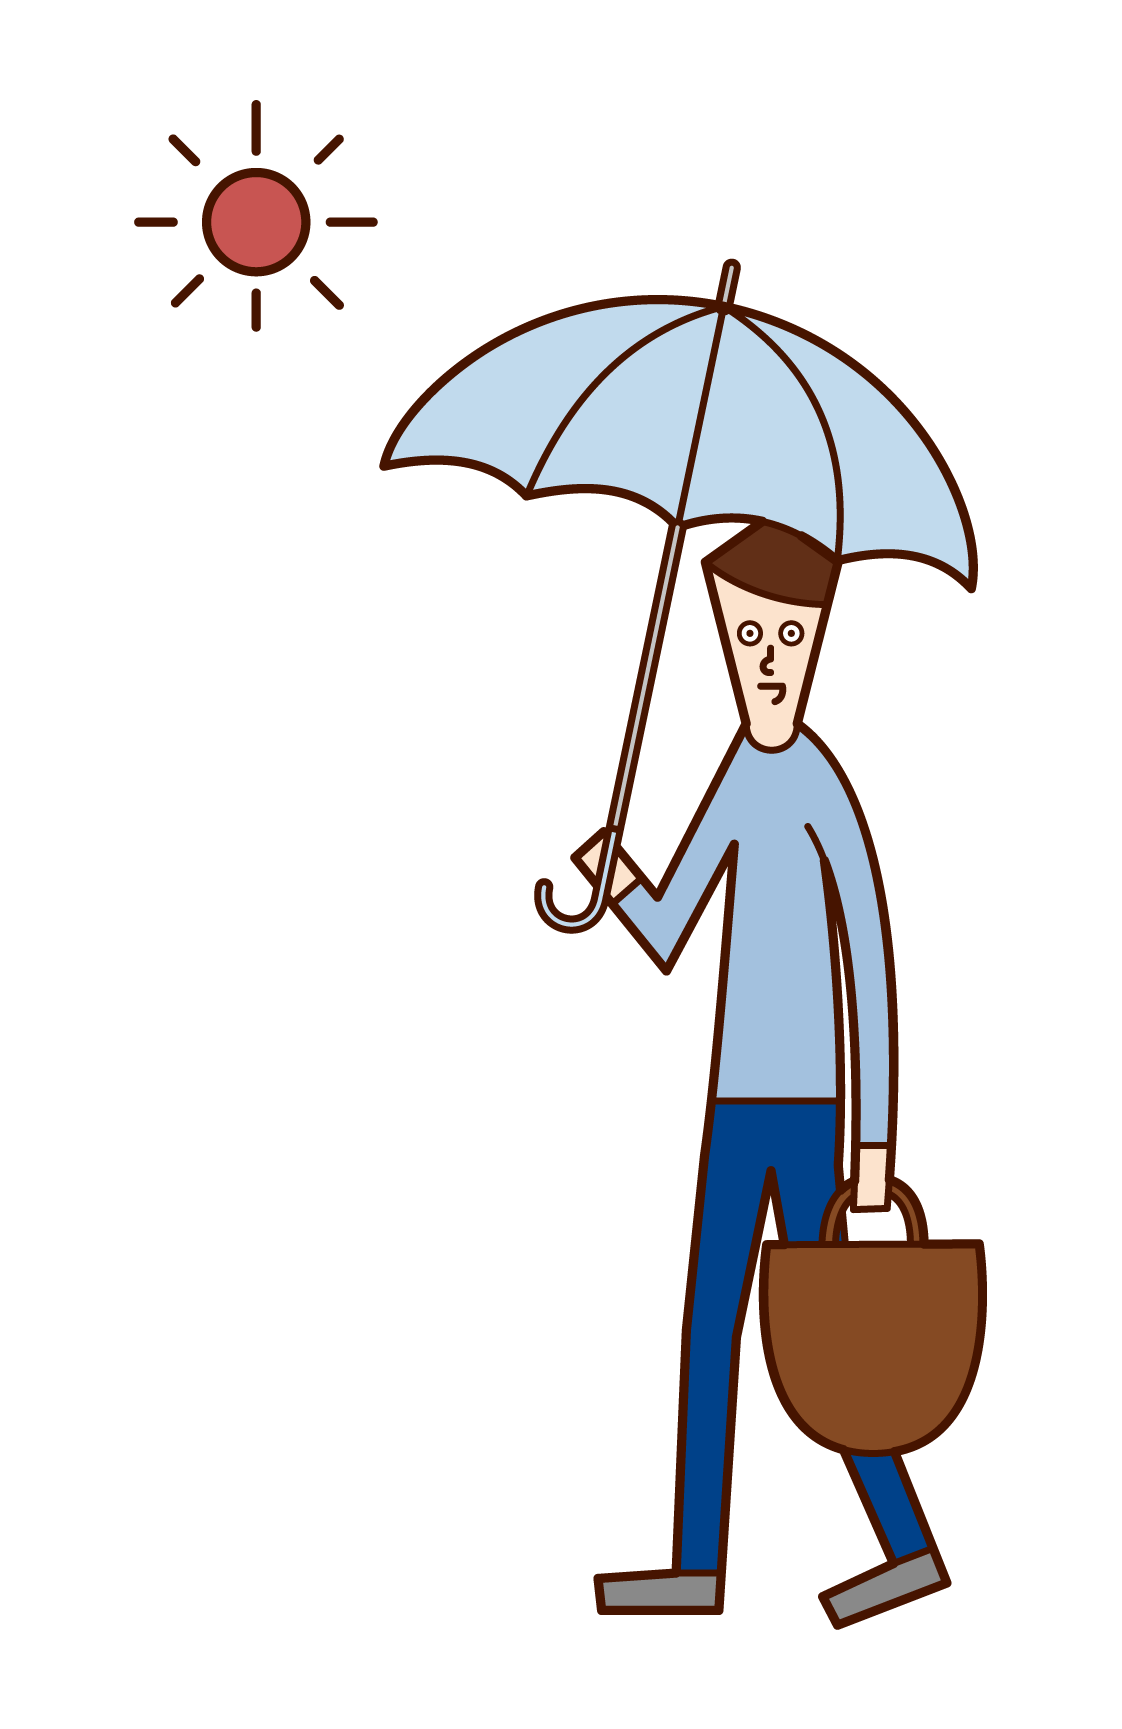 Illustration of a man walking with a parasol